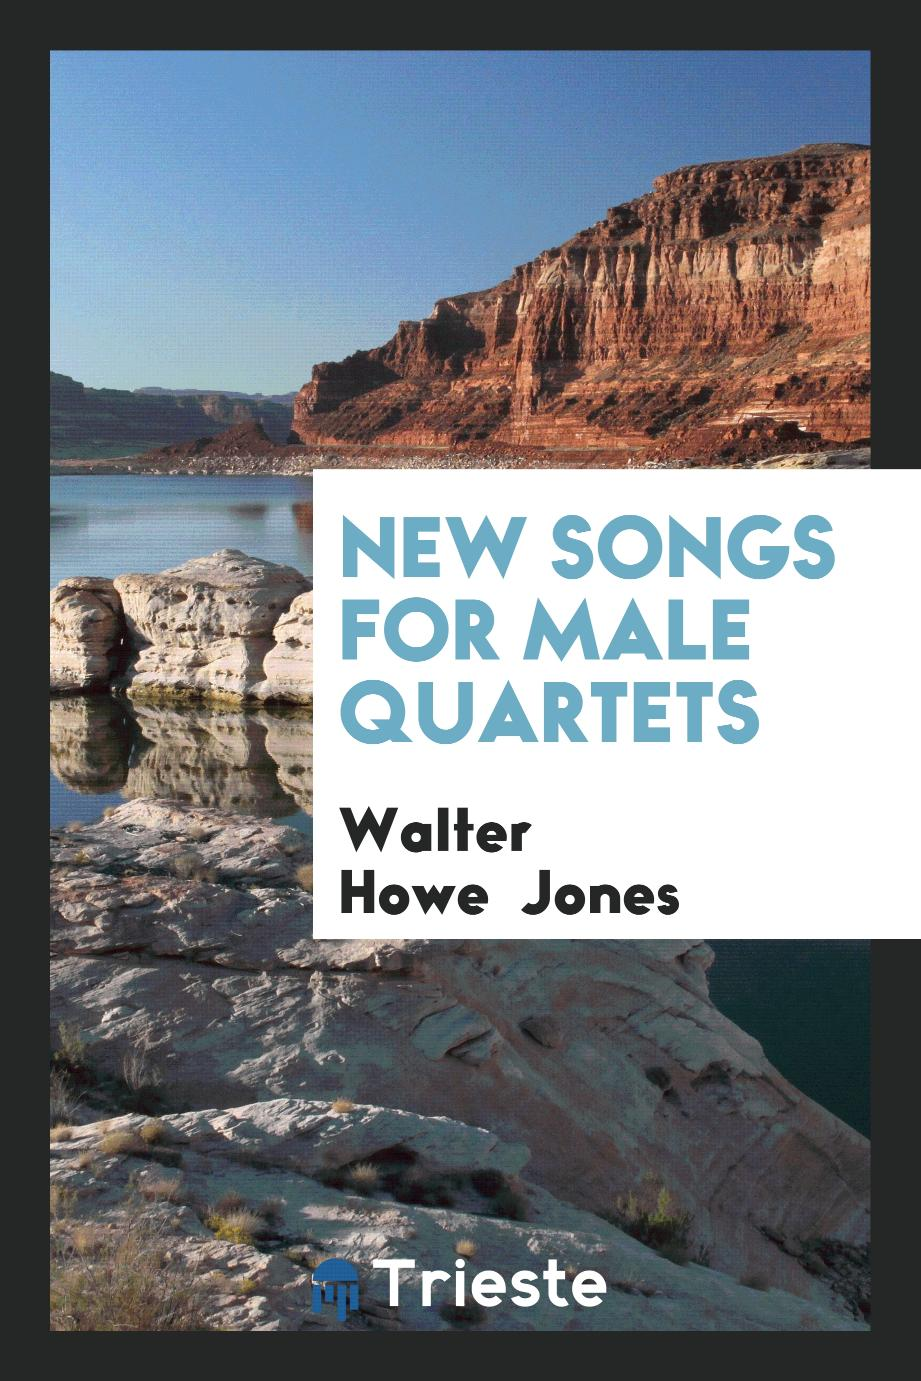 New Songs for Male Quartets